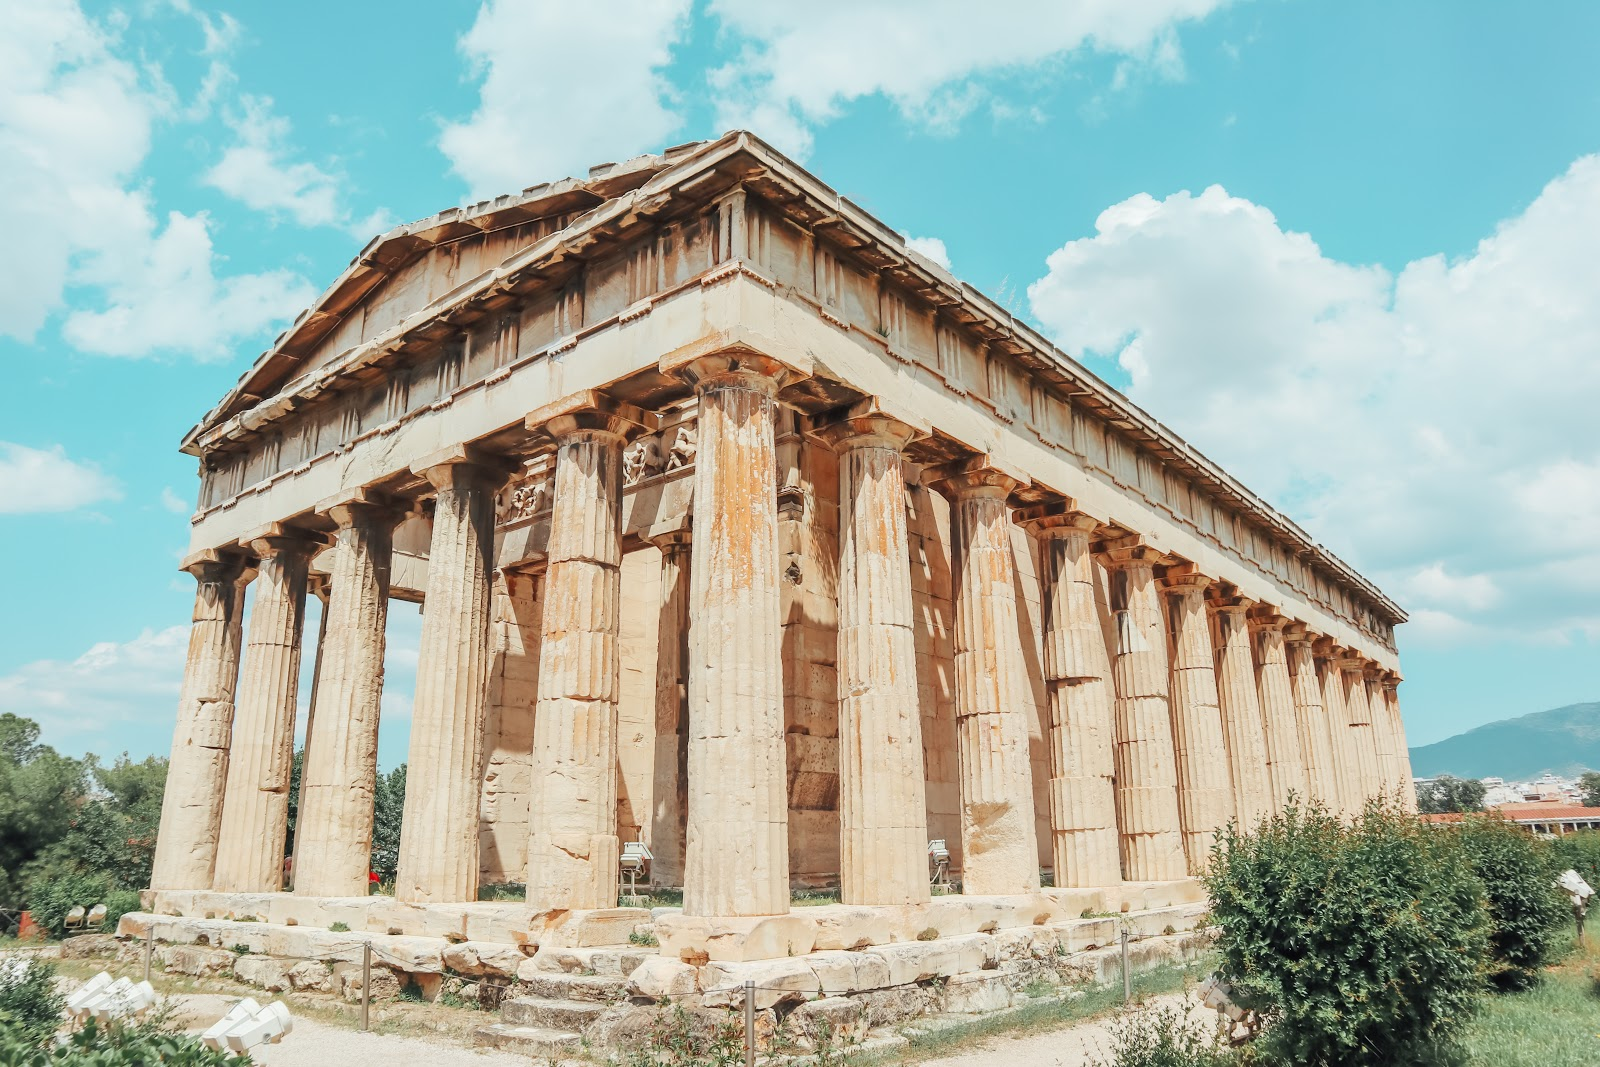 Top touristic sites in Athens